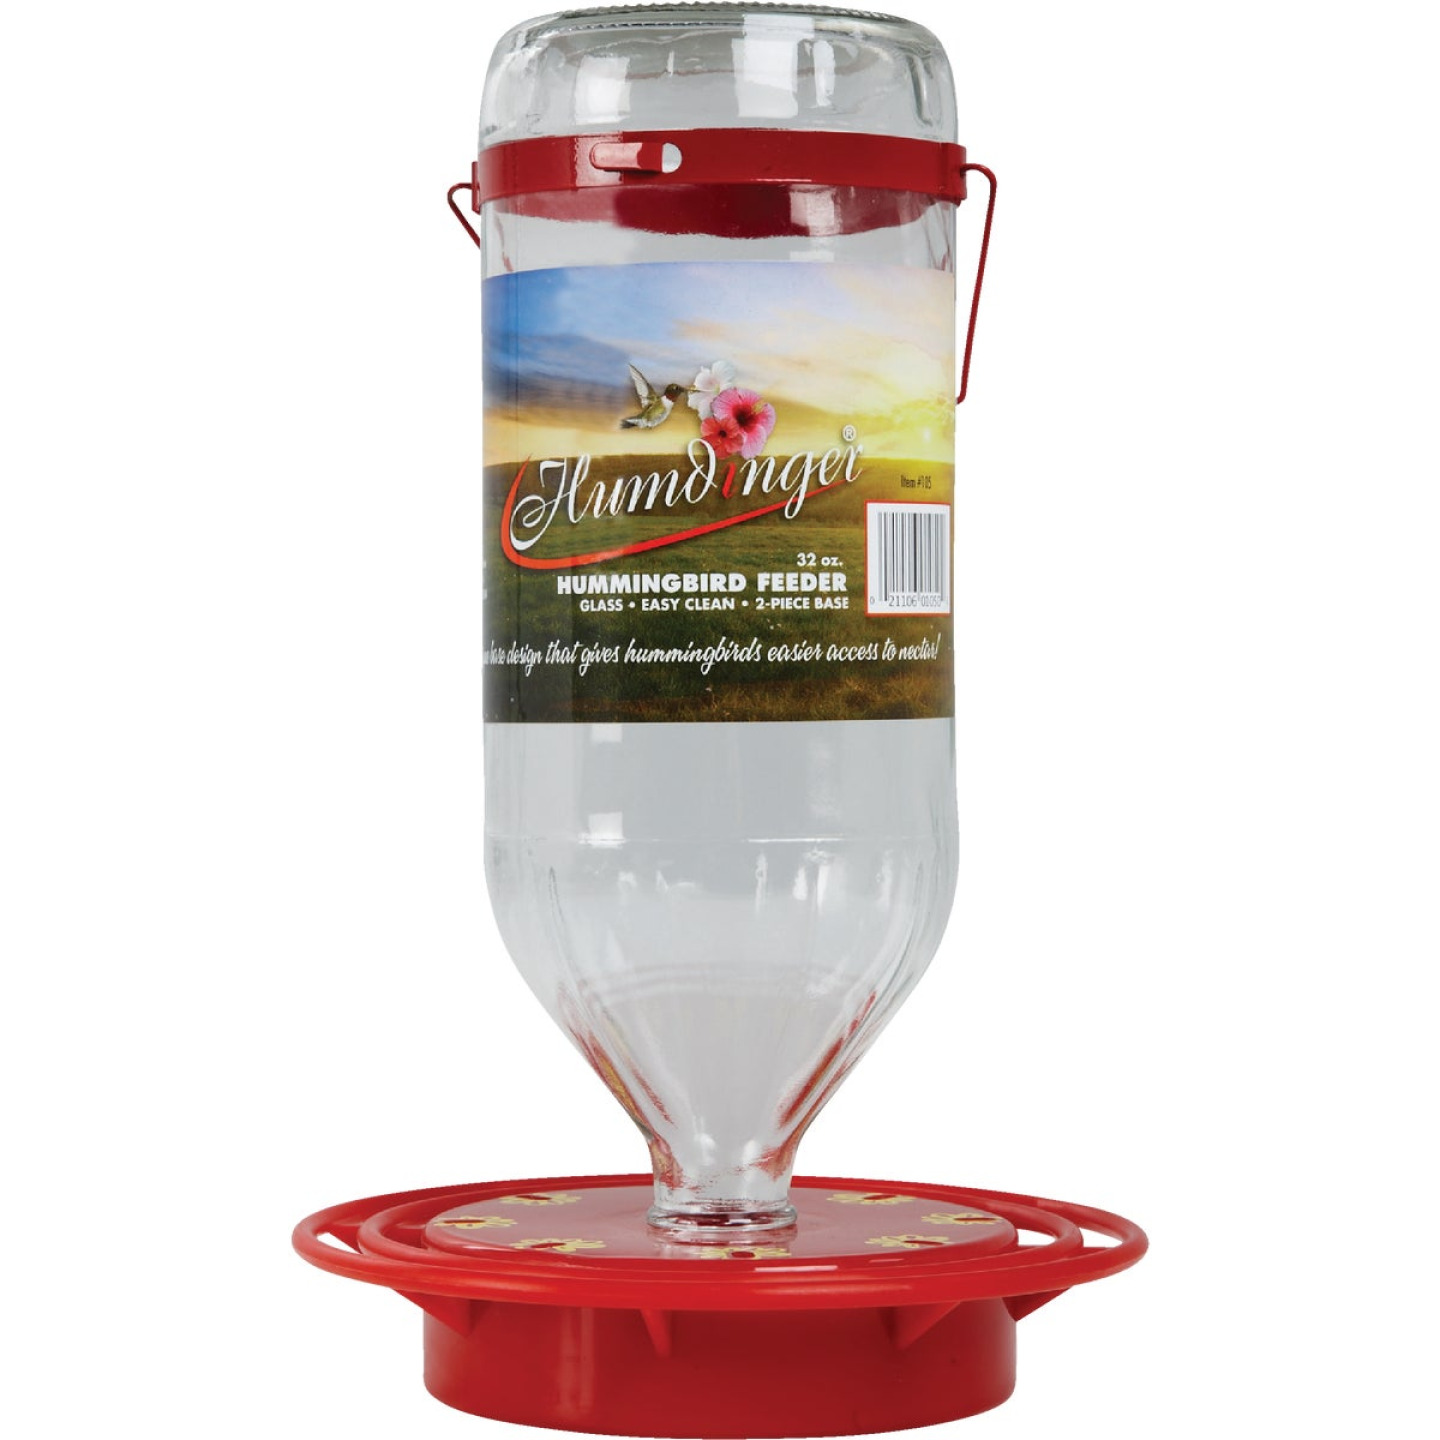 Humdinger 32 Oz. Glass Hummingbird Feeder Image 2